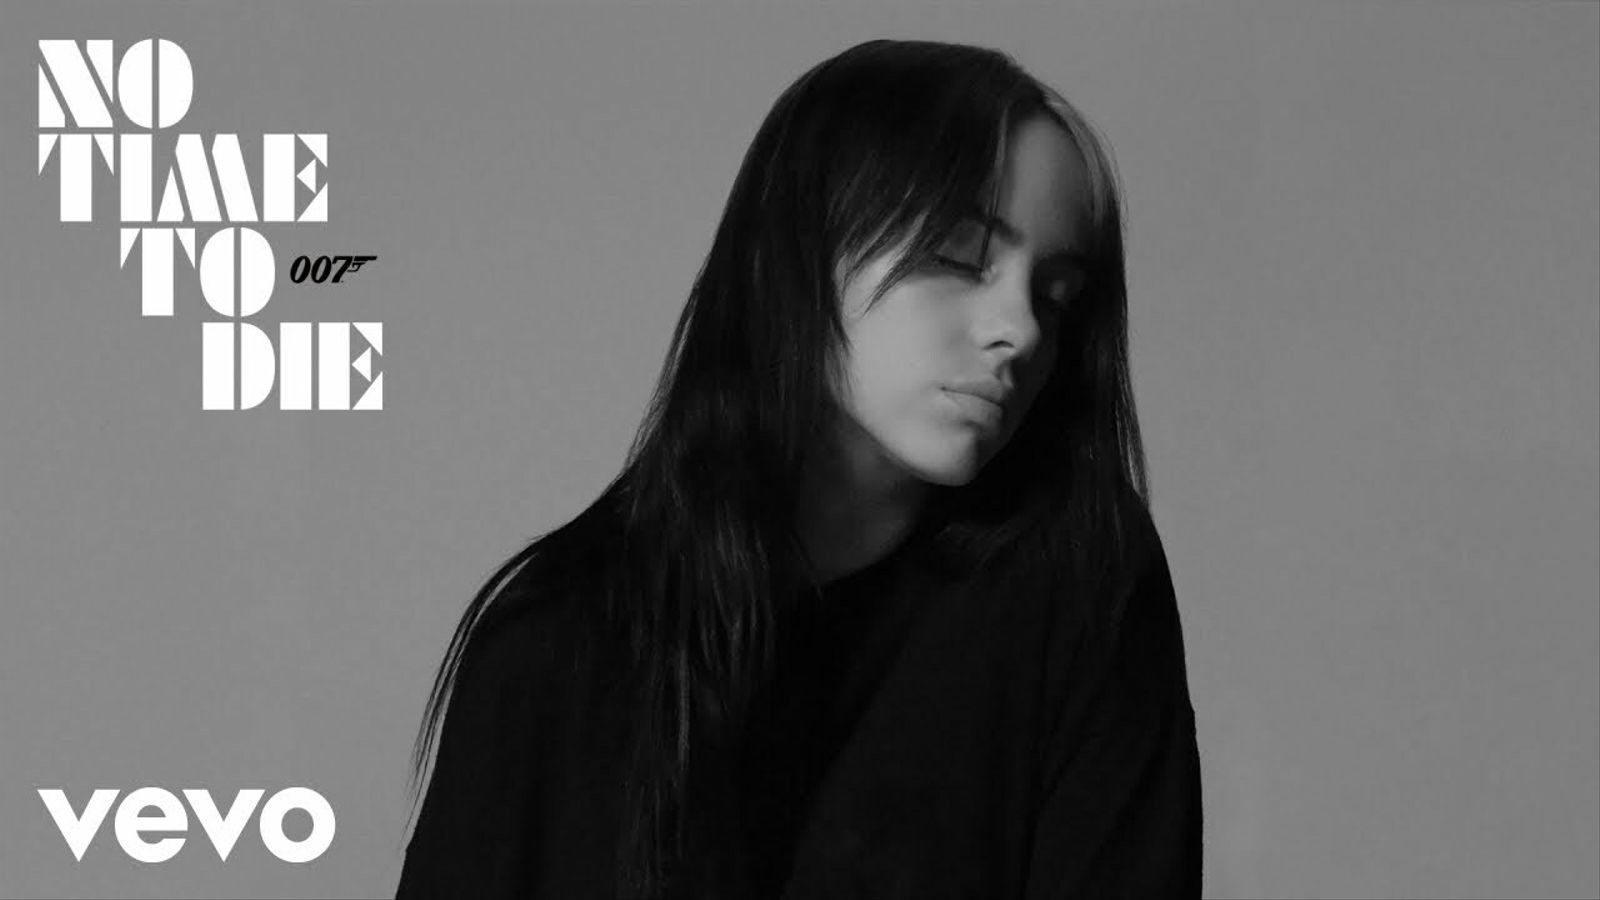 'No time to die', de Billie Eilish